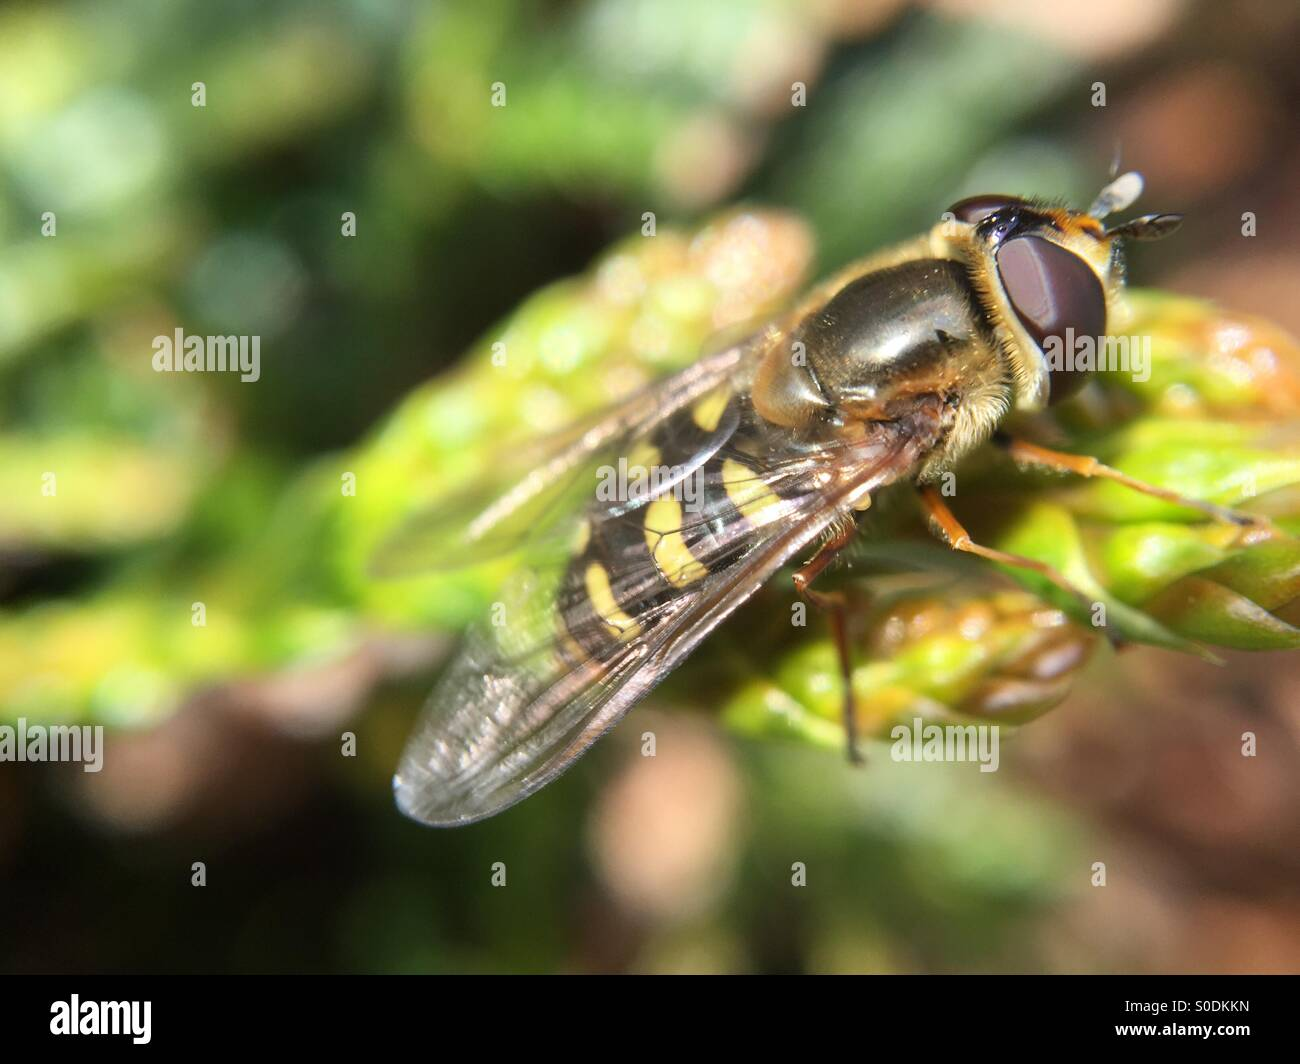 Hover fly on a bush branch Stock Photo